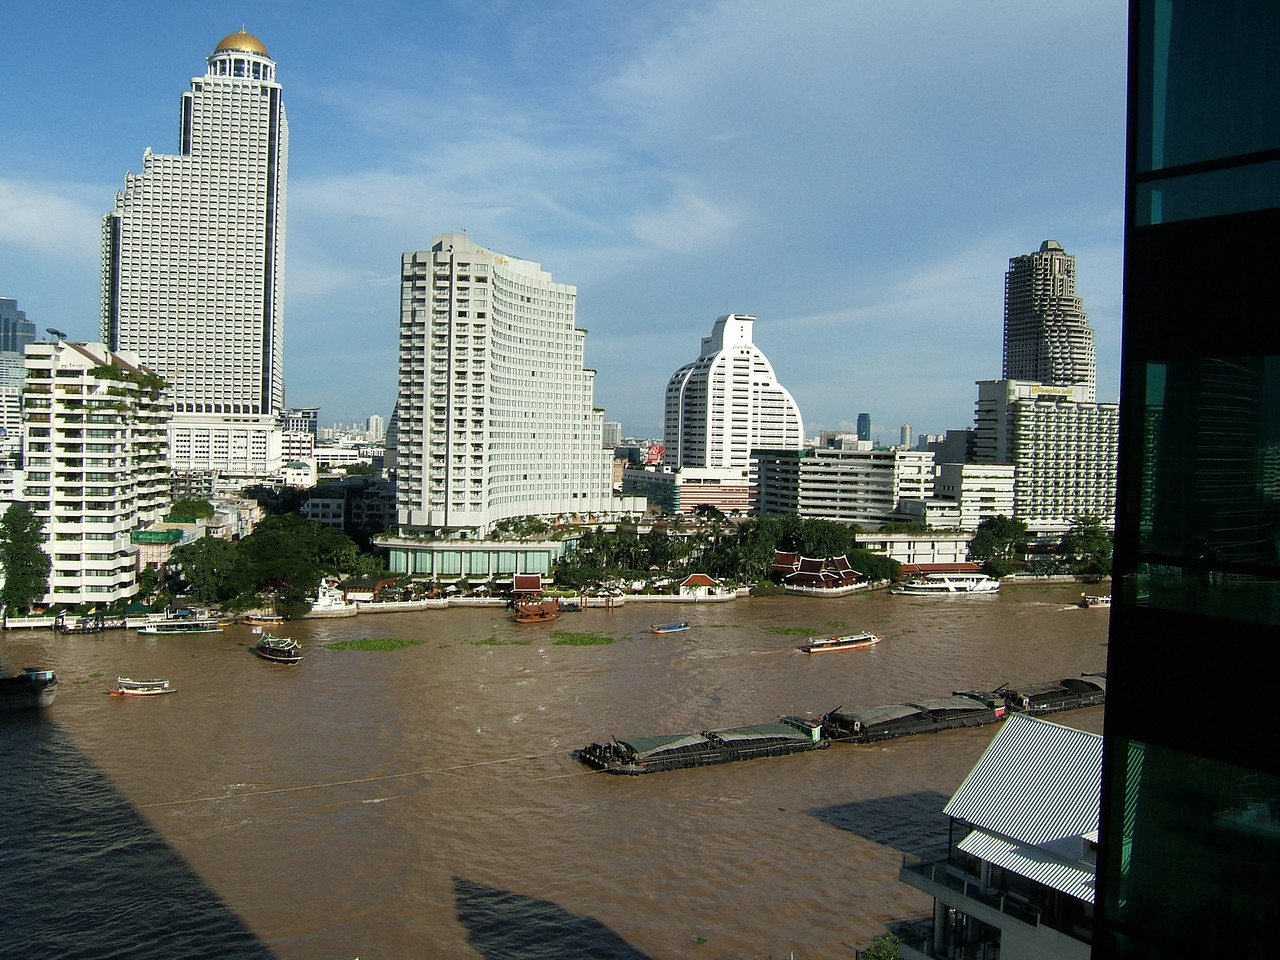 Here are some views of the Chao Praya river from the Peninsula rooms.